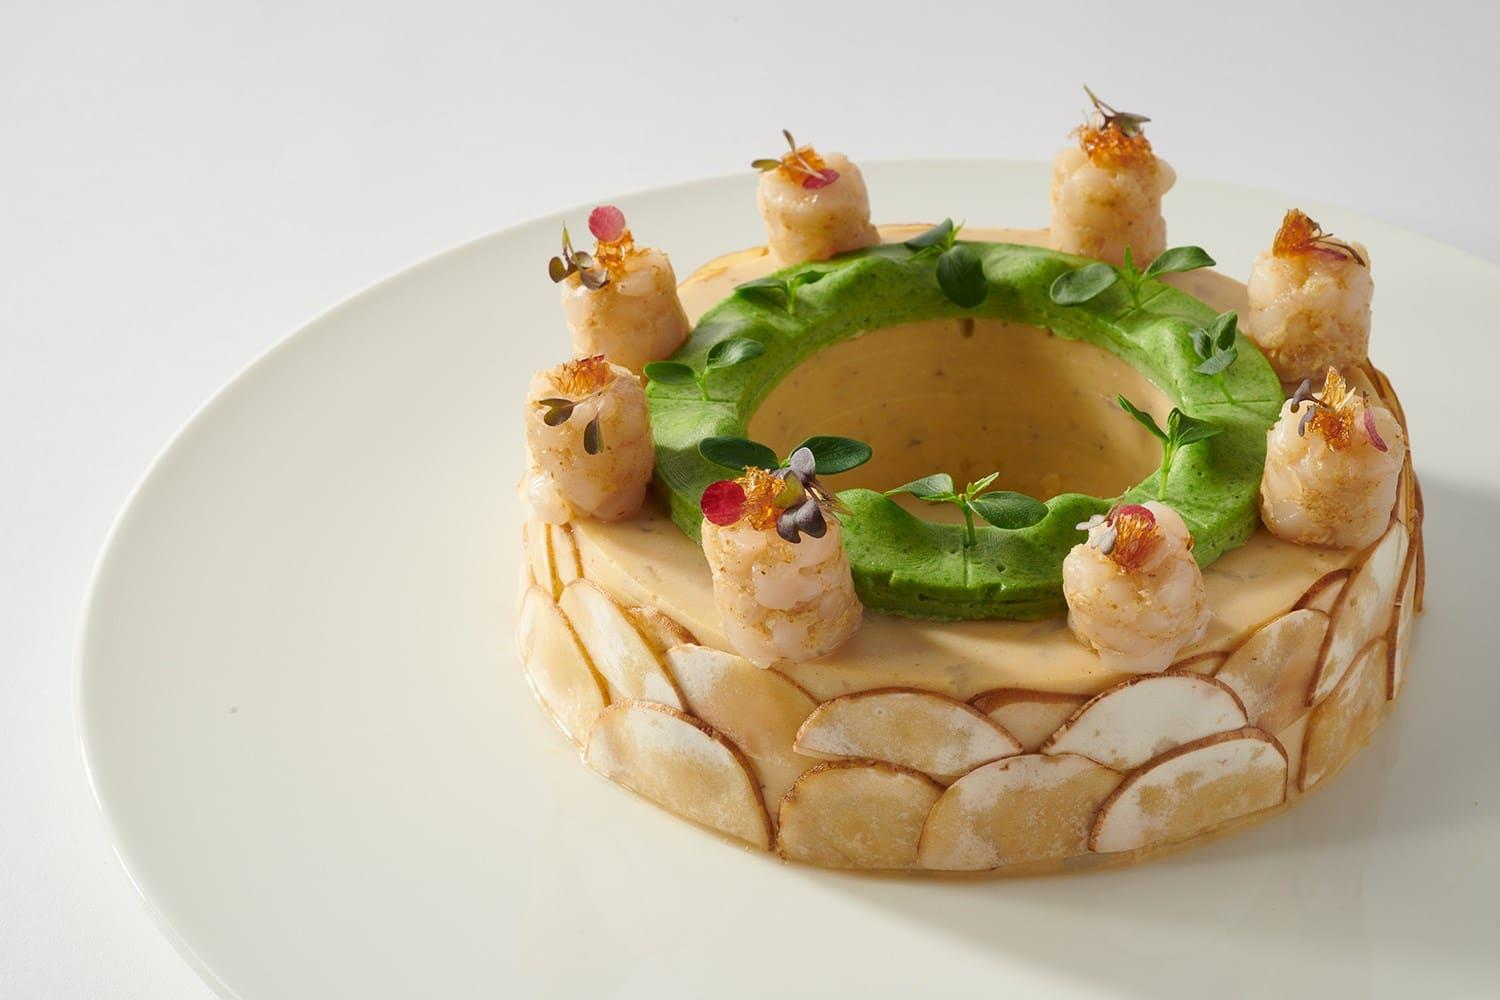 original_Bocuse-d-or-Chile-plate.jpg